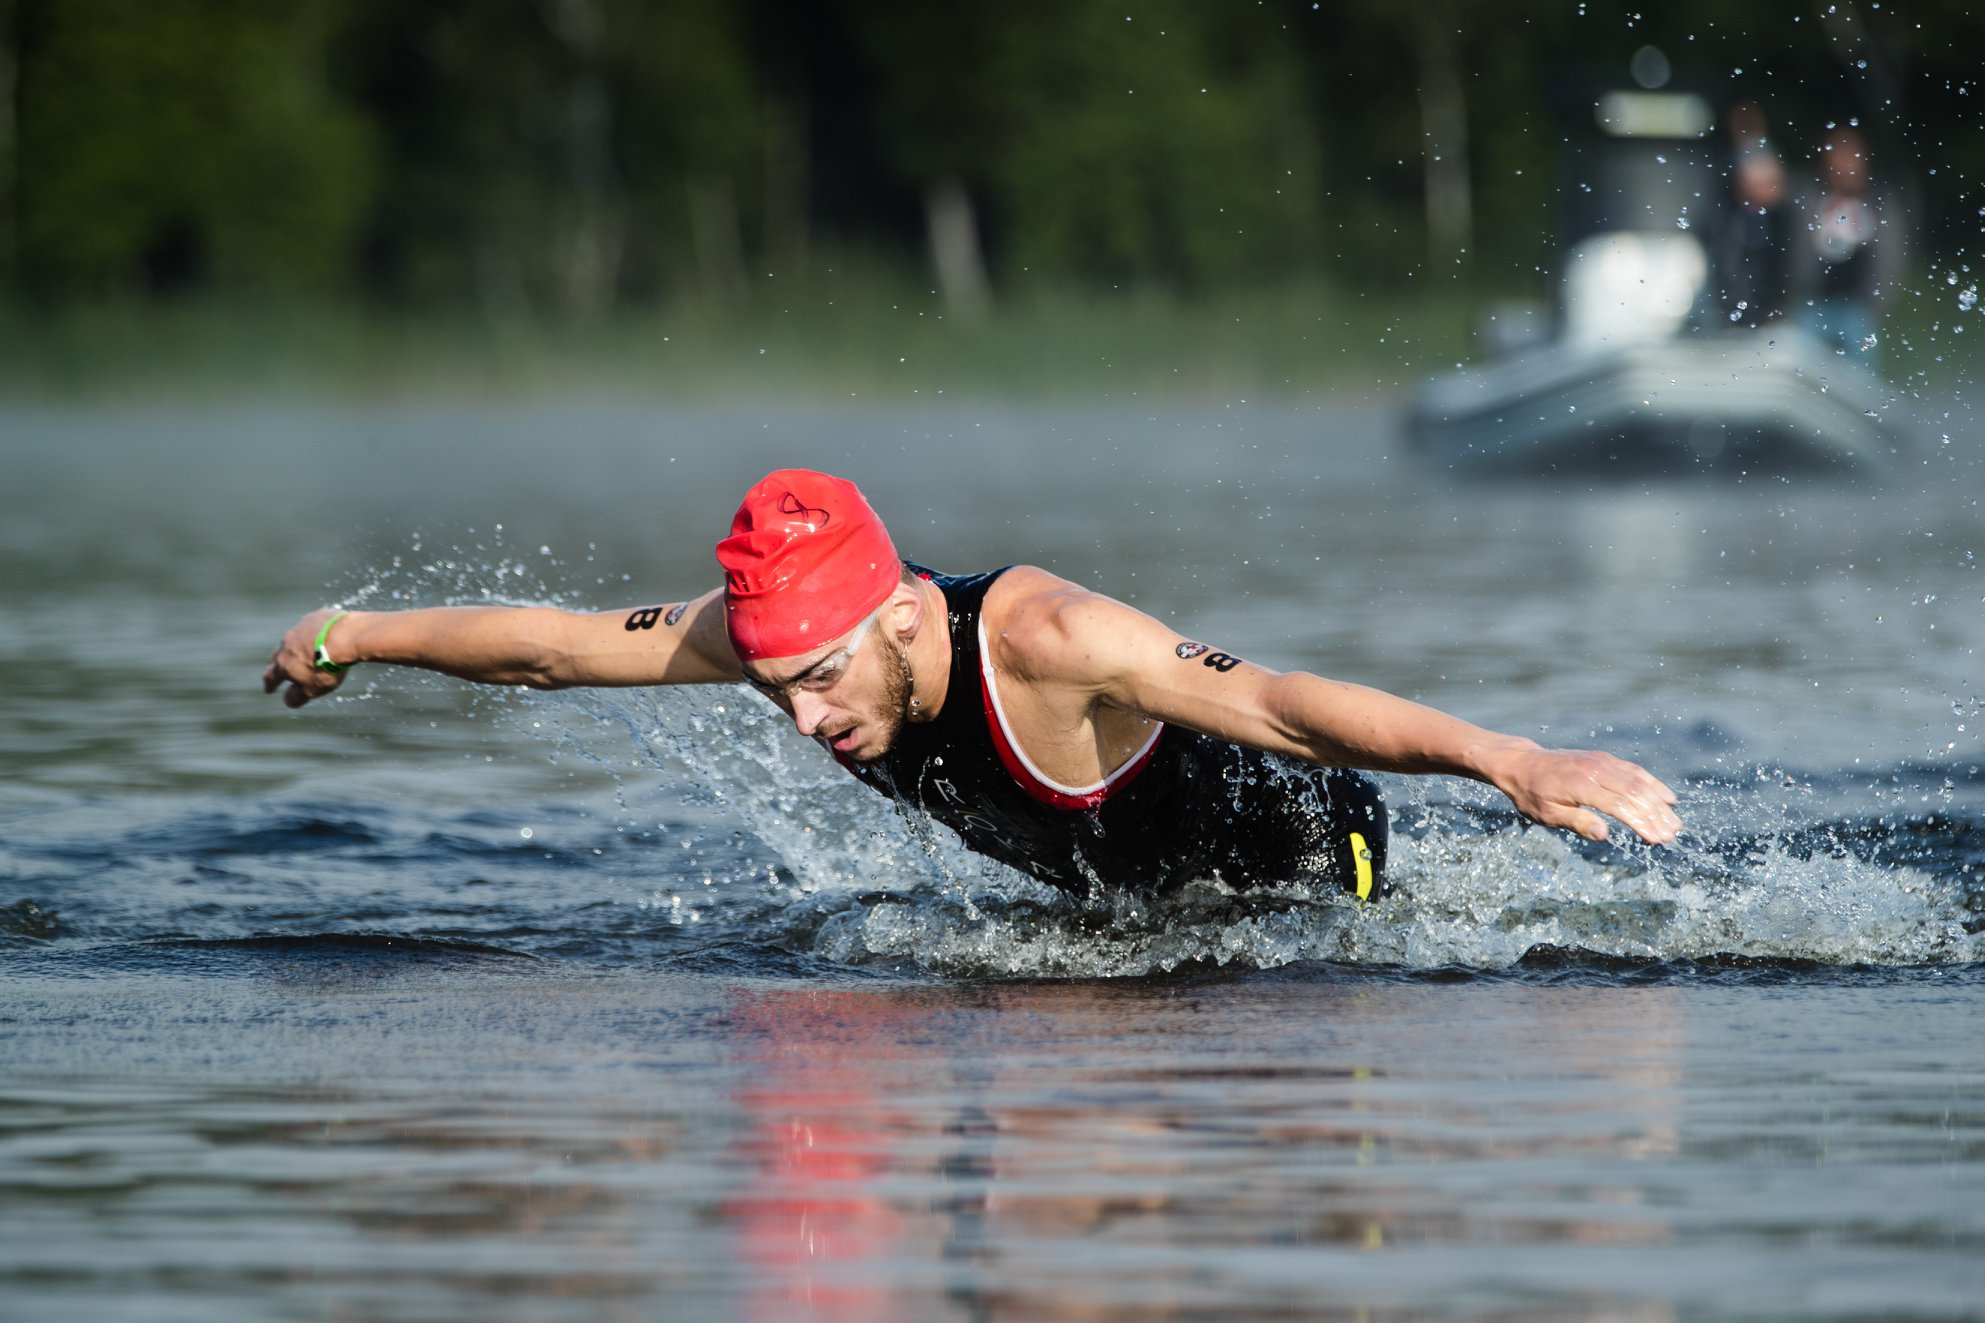 Coach_Terry_Wilson_Pursuit_of_The_Perfect_Race_IRONMAN_Mont_Tremblant_Cody_Beals_Swim.jpg